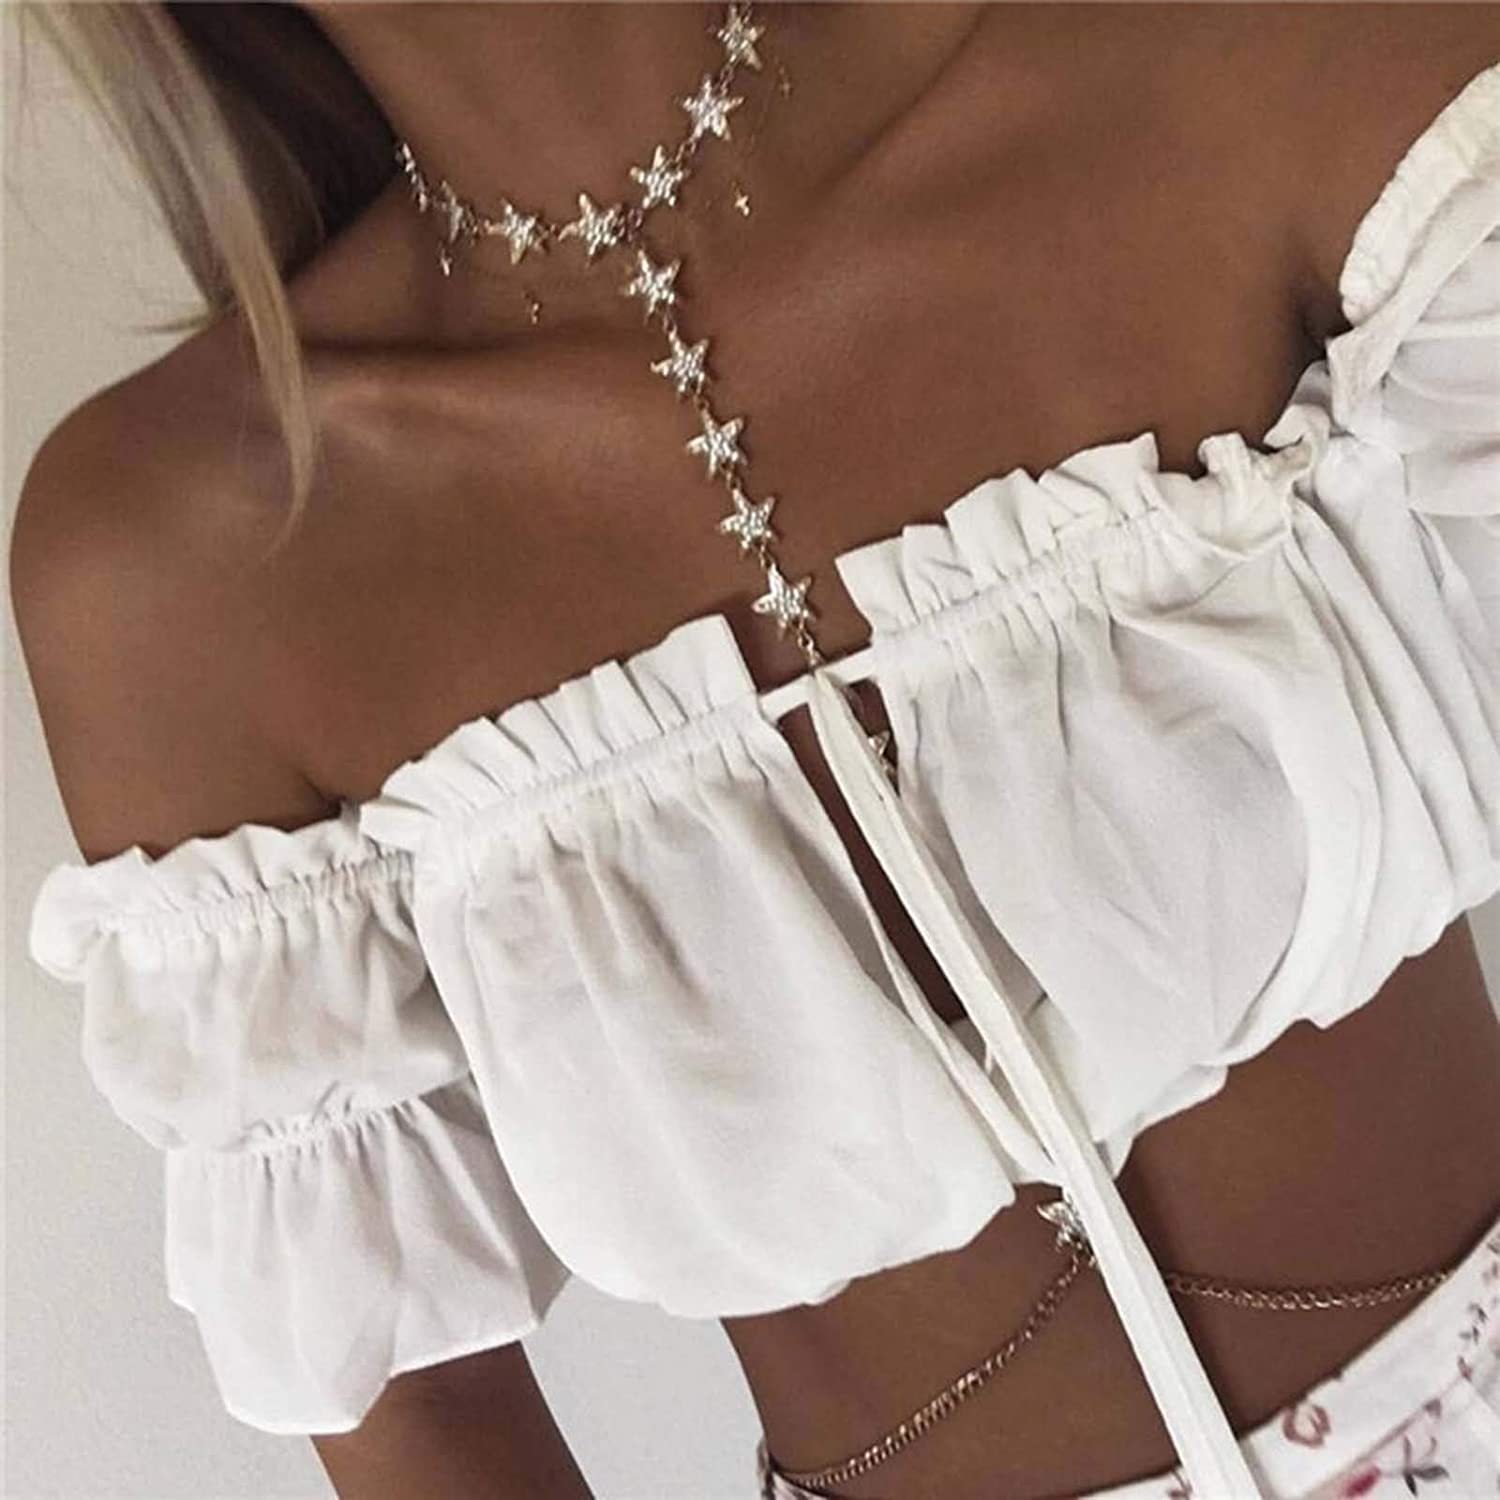 Kakaco Boho Body Chains Gold Star Choker Necklace Chain Crystal Chest Chain Bikini Belly Chain Sexy Body Jewelry for Women and Girls